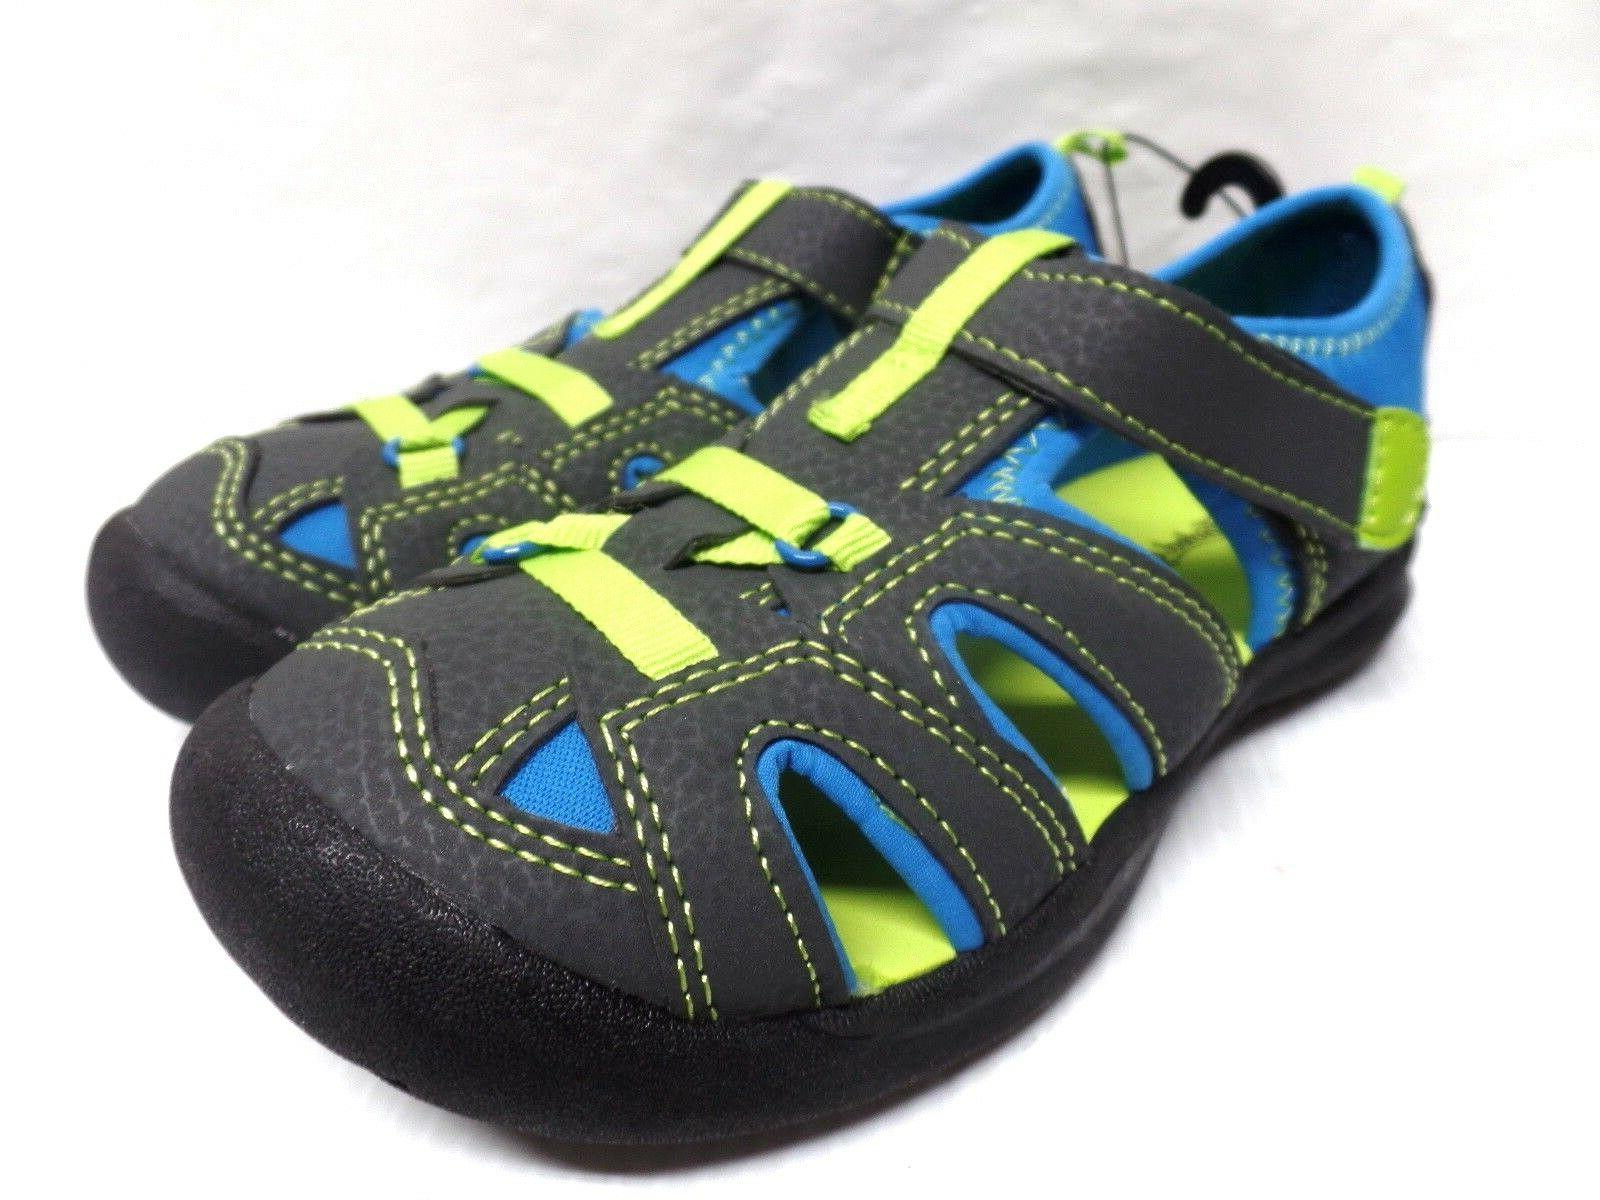 FADED GLORY BOYS CASUAL SANDALS SHOES  COLOR GRAY BLUE GREEN